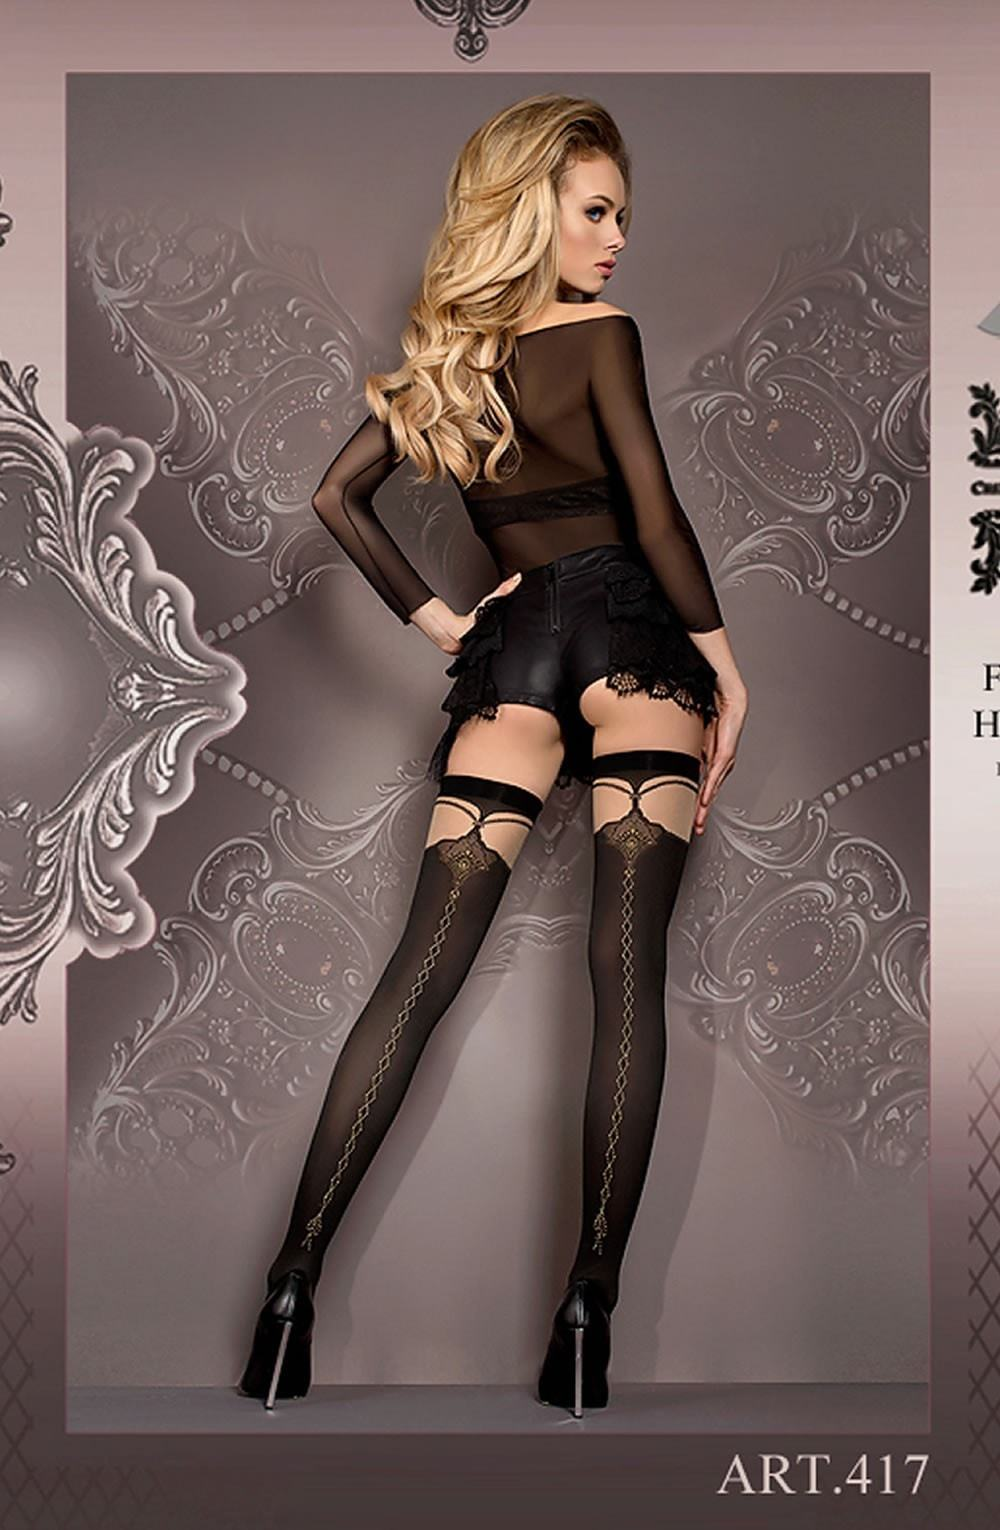 Ballerina 417 Stockings - Divas Closet